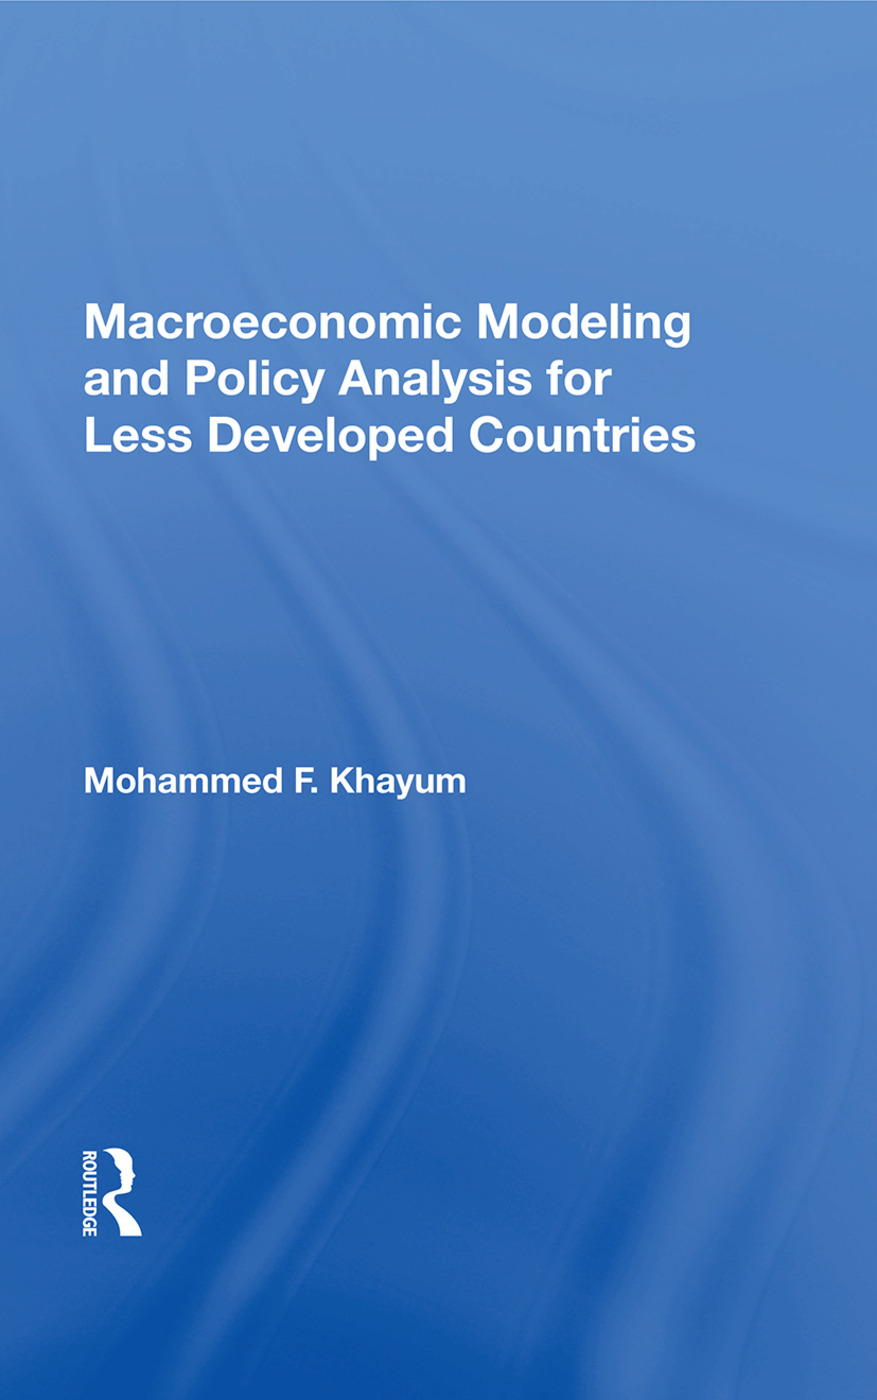 Macroeconomic Modeling And Policy Analysis For Less Developed Countries: 1st Edition (Paperback) book cover